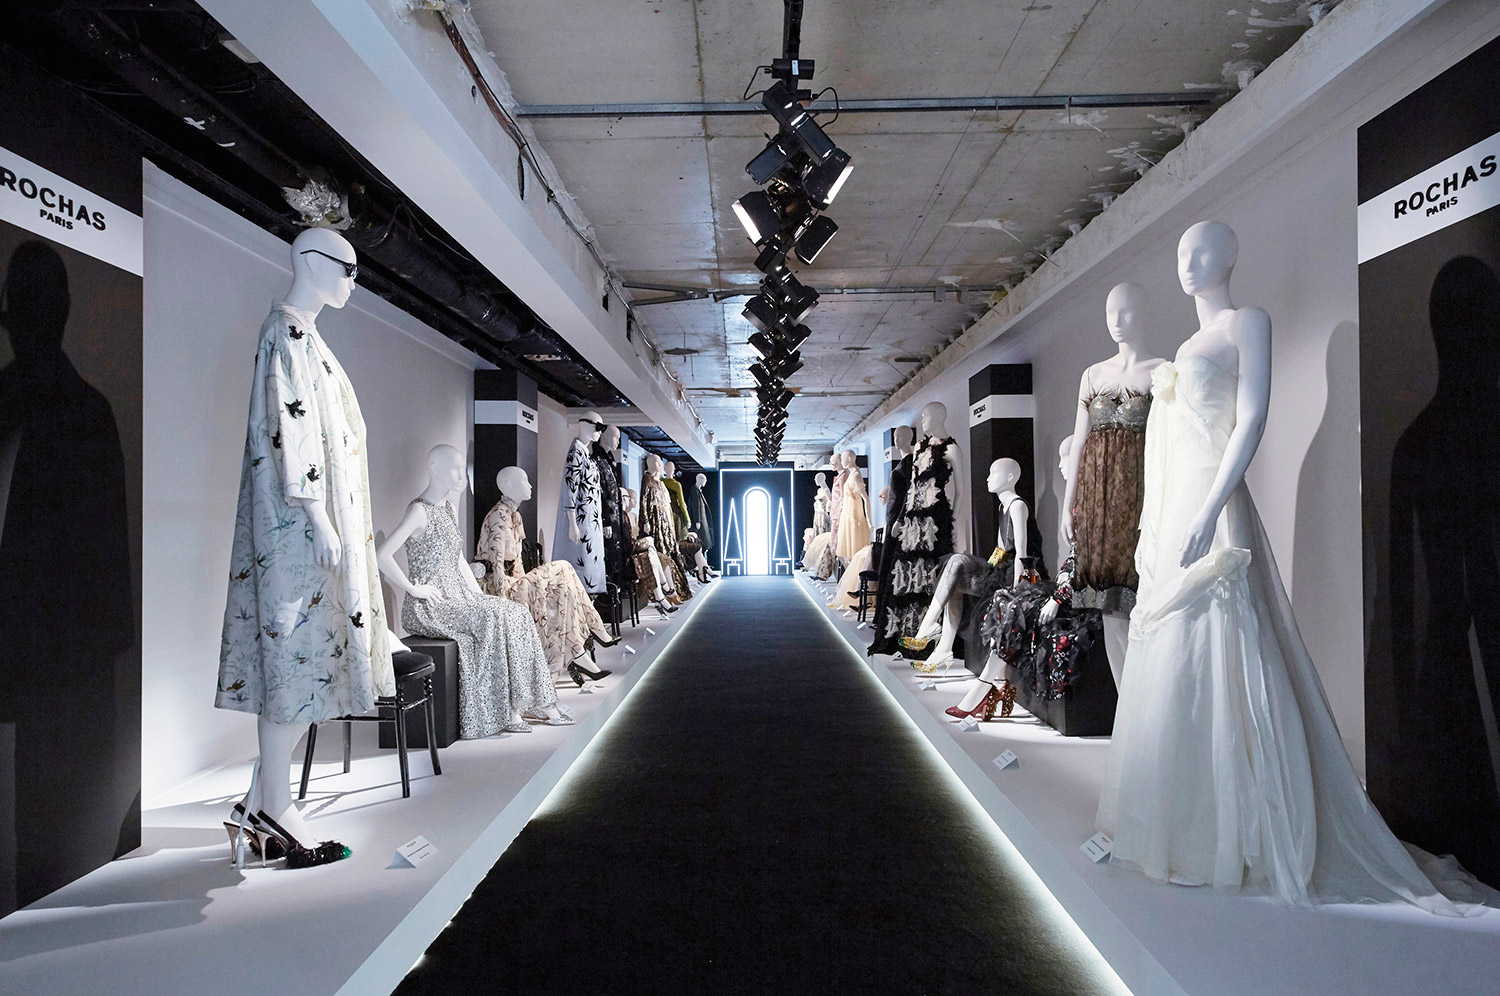 rochas-boutique-champs-elysees-retrospective-photo-paris